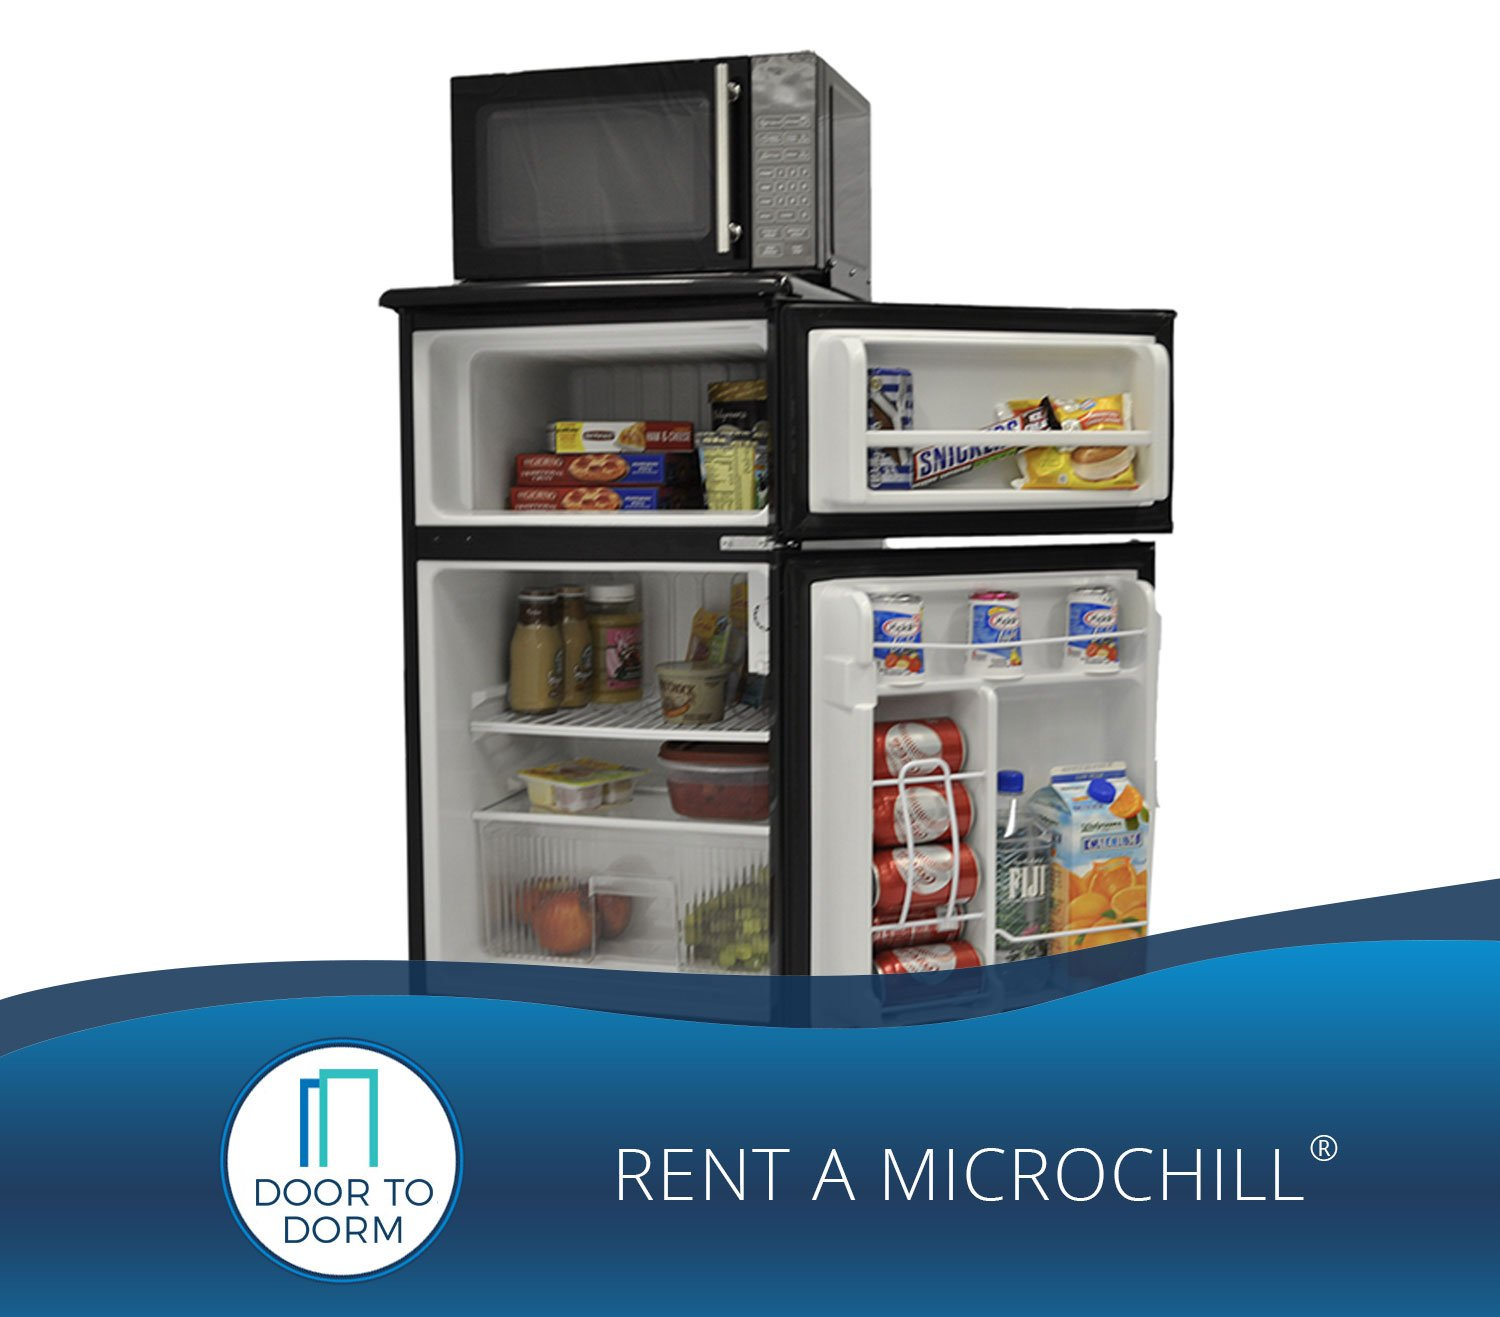 Rent a Microchill - Collegiate